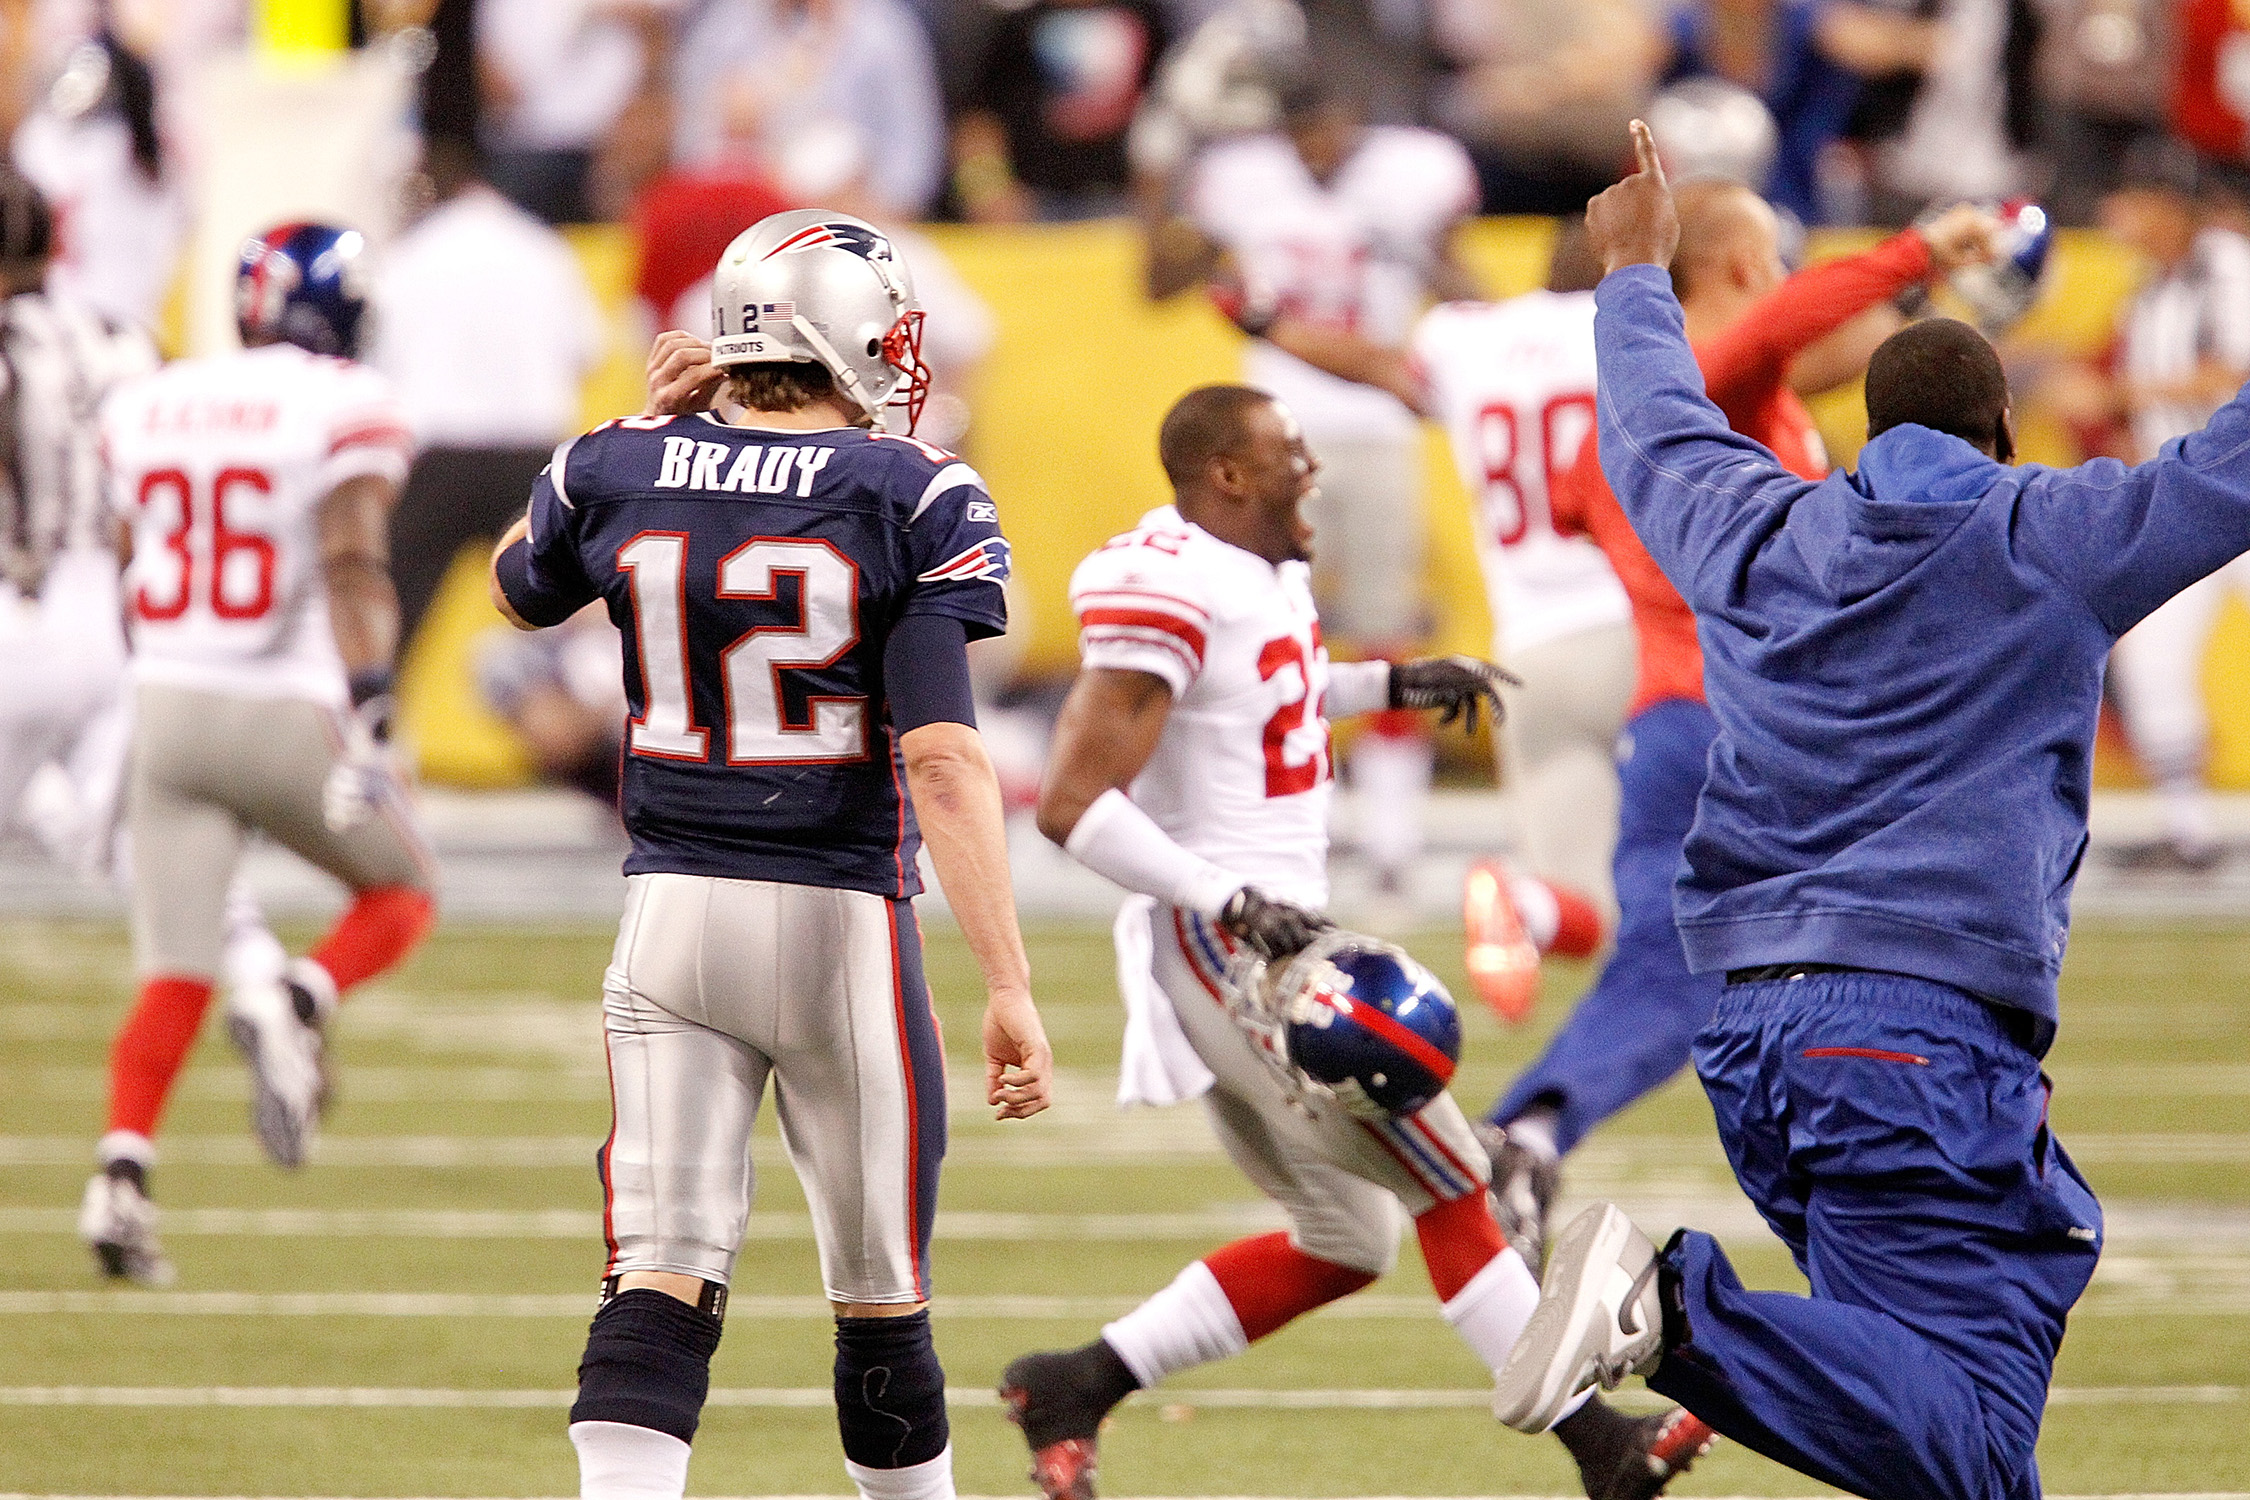 Why do Giants fans dislike Tom Brady so much? It's hard to say, considering New York is 2–0 in Super Bowls against Brady. But talk to almost any Giants fan about Brady, and you'll quickly sense the hatred.